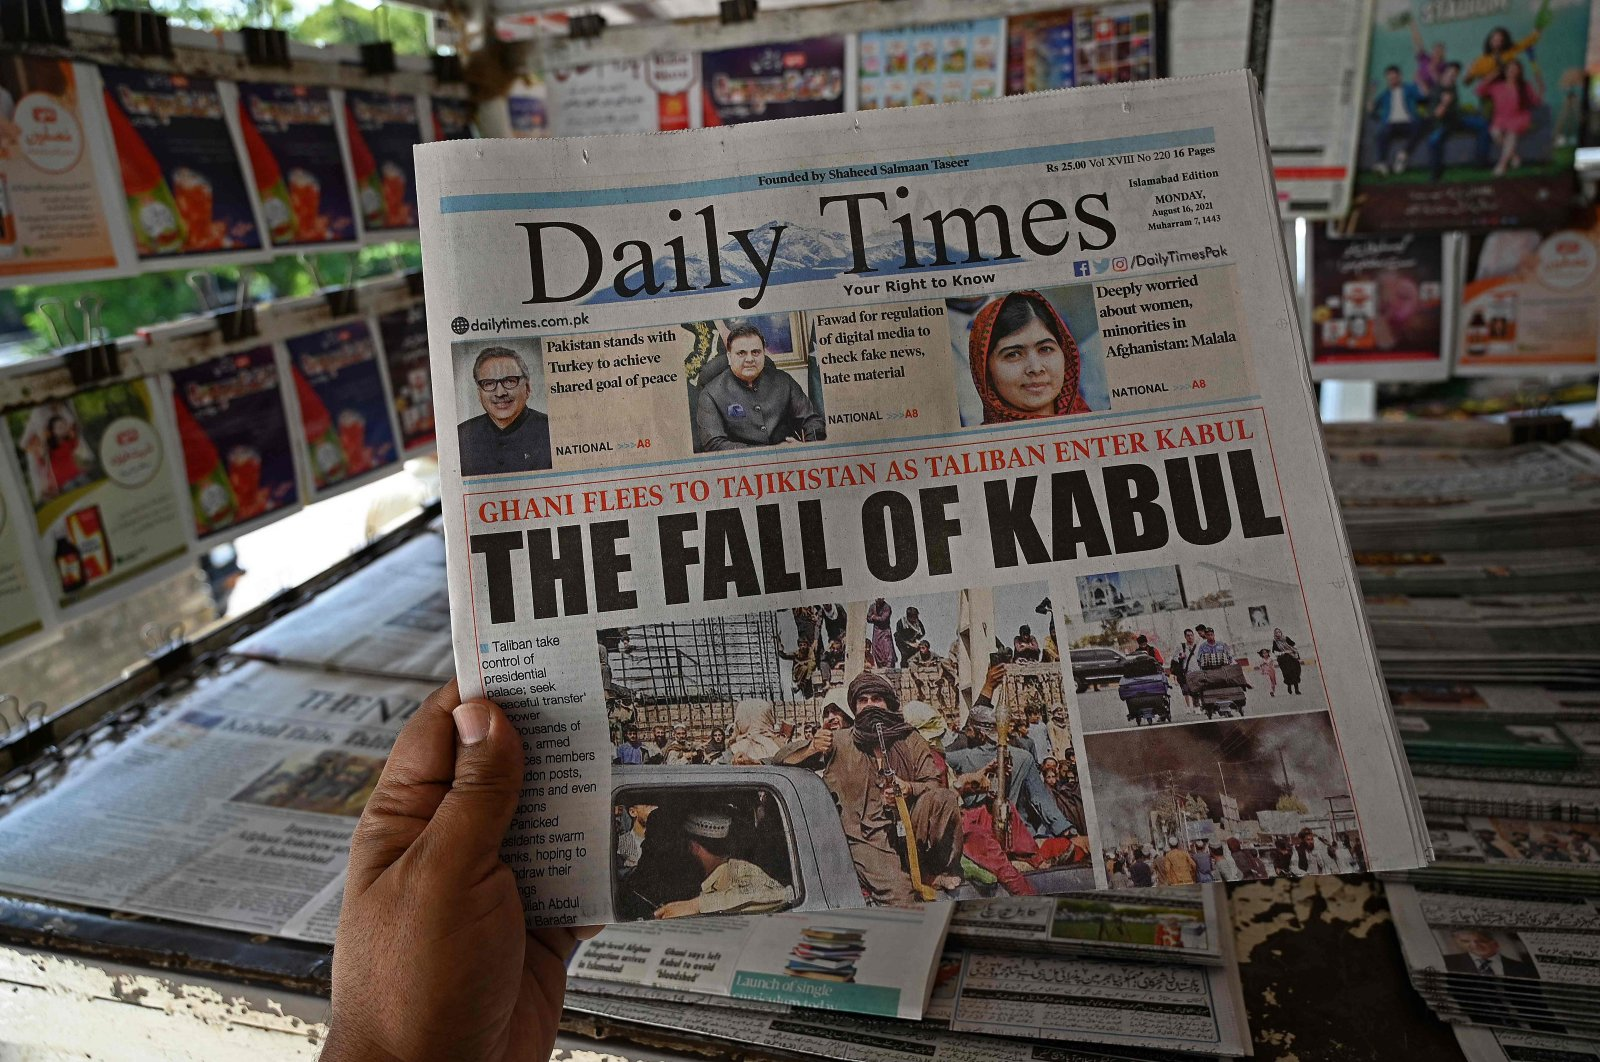 A man holds a newspaper displaying front page news about Afghanistan, at a stall in Islamabad, Pakistan, Aug. 16, 2021. (AFP Photo)